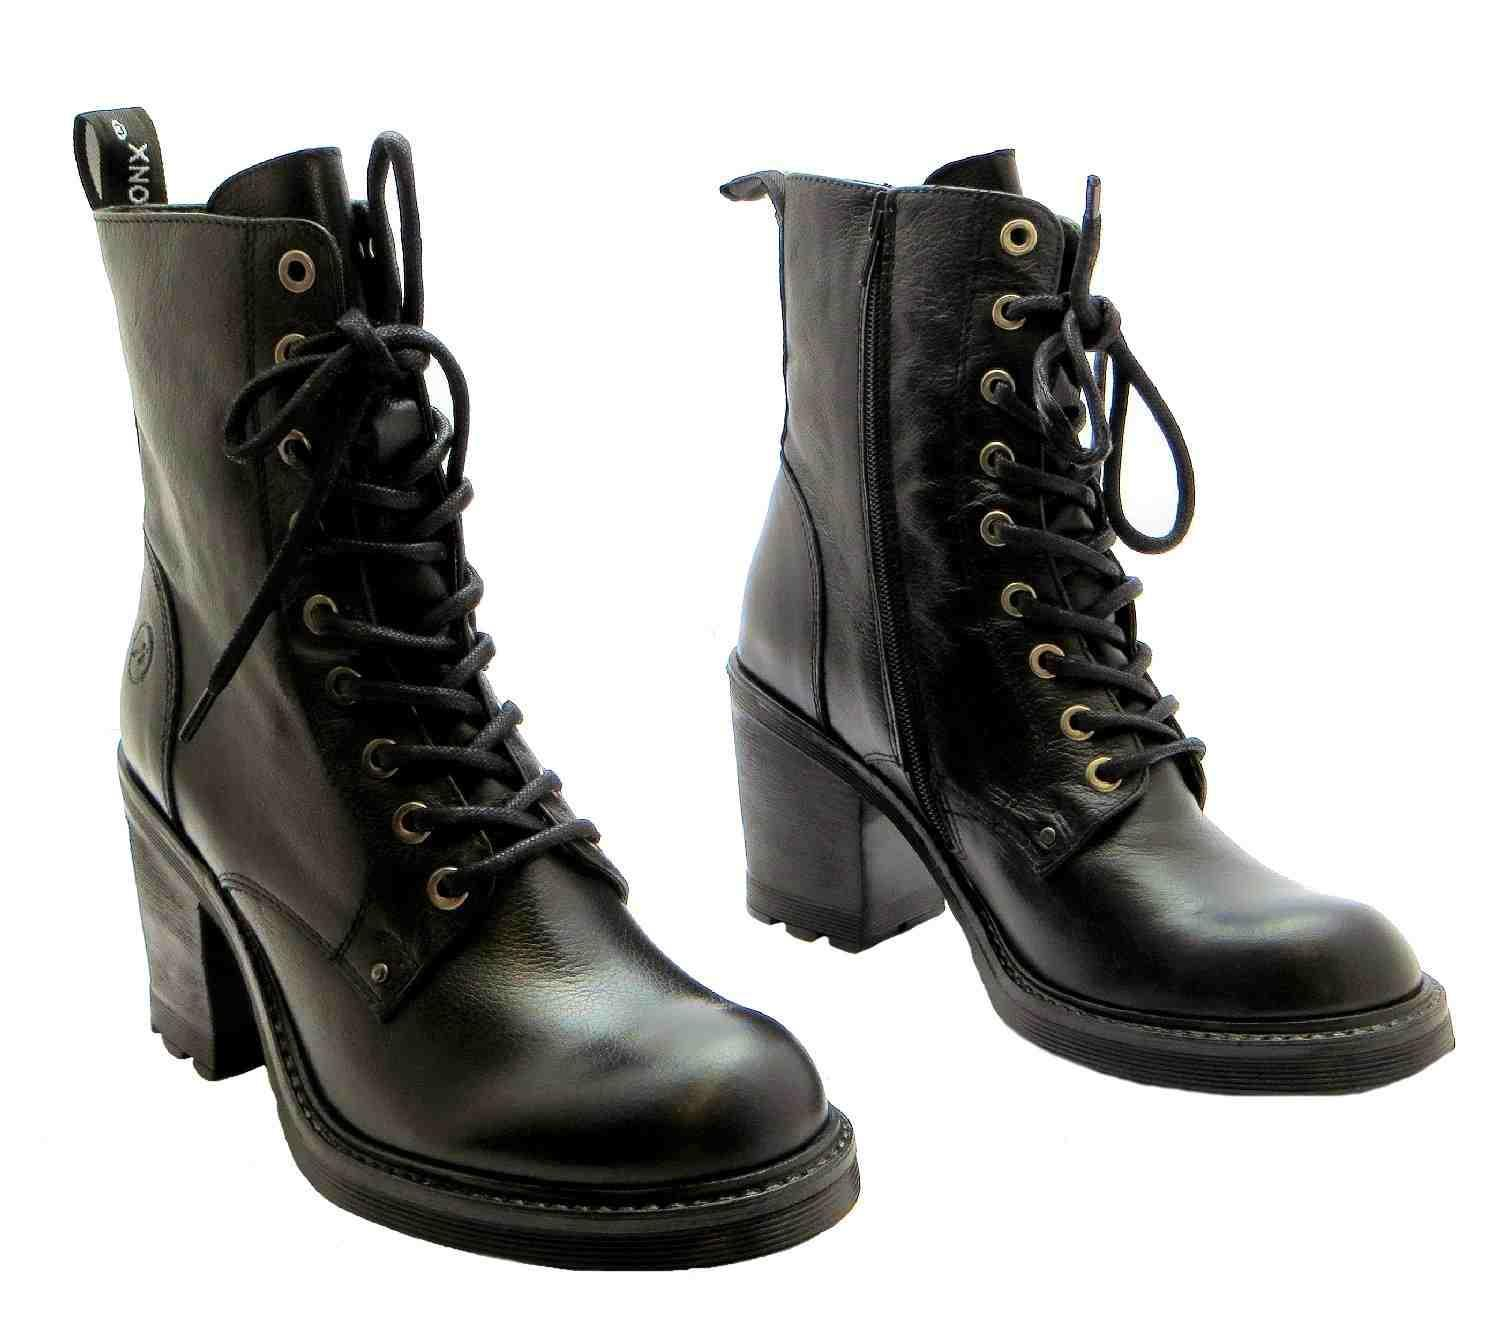 high heel combat boots boot yc